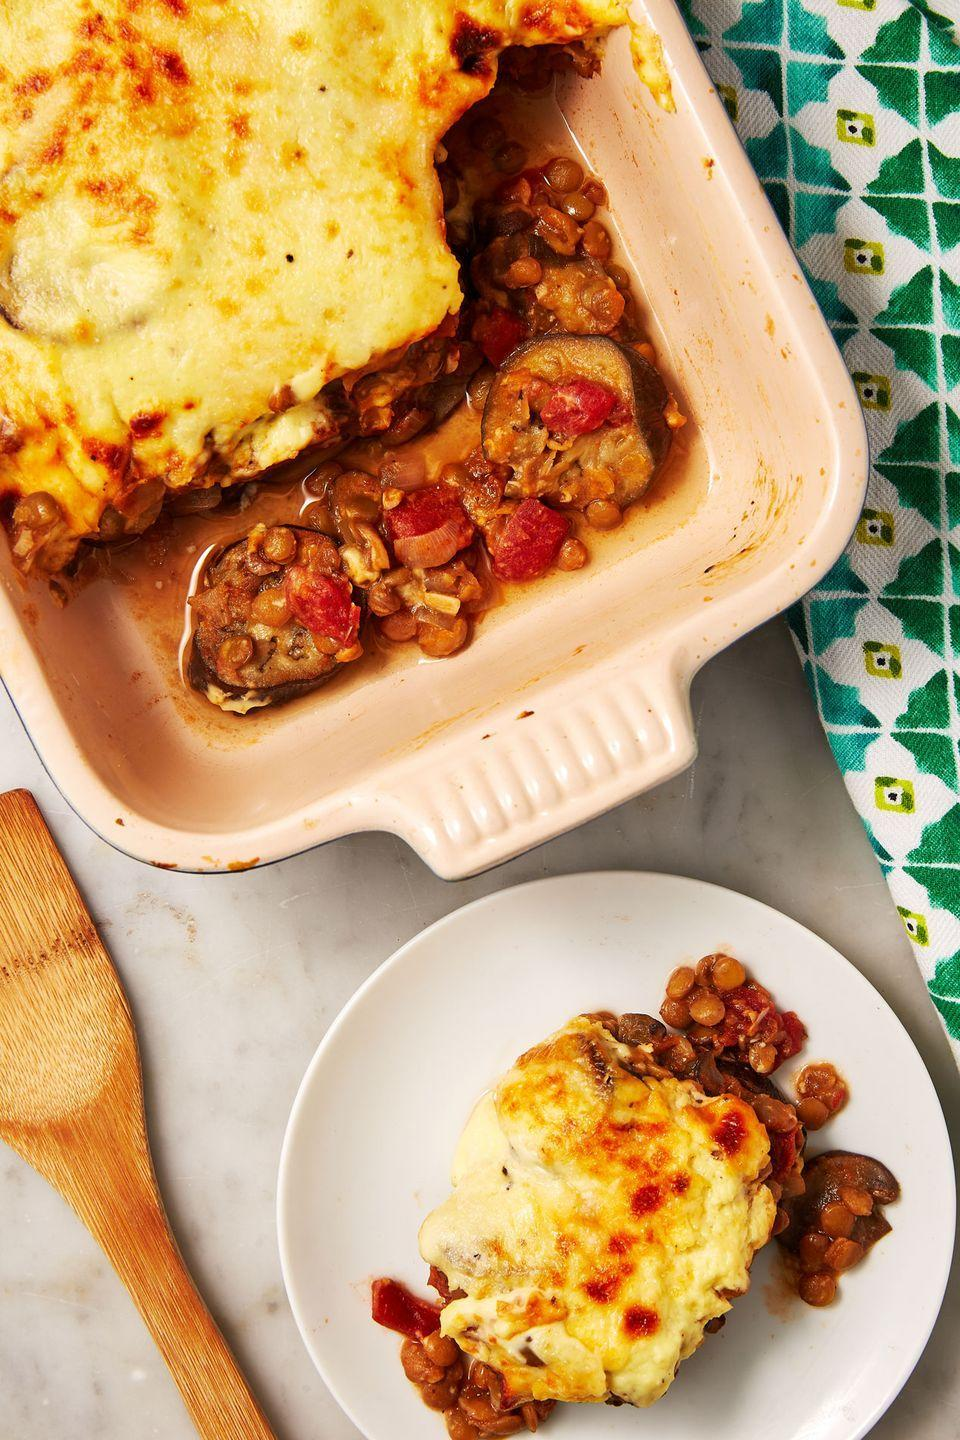 """<p>This veggie-packed Greek classic is topped with a Parmesan-laden sauce before baked.</p><p>Get the recipe from <a href=""""https://www.delish.com/cooking/recipe-ideas/a30876085/vegetarian-moussaka-recipe/"""" rel=""""nofollow noopener"""" target=""""_blank"""" data-ylk=""""slk:Delish."""" class=""""link rapid-noclick-resp"""">Delish.</a></p>"""